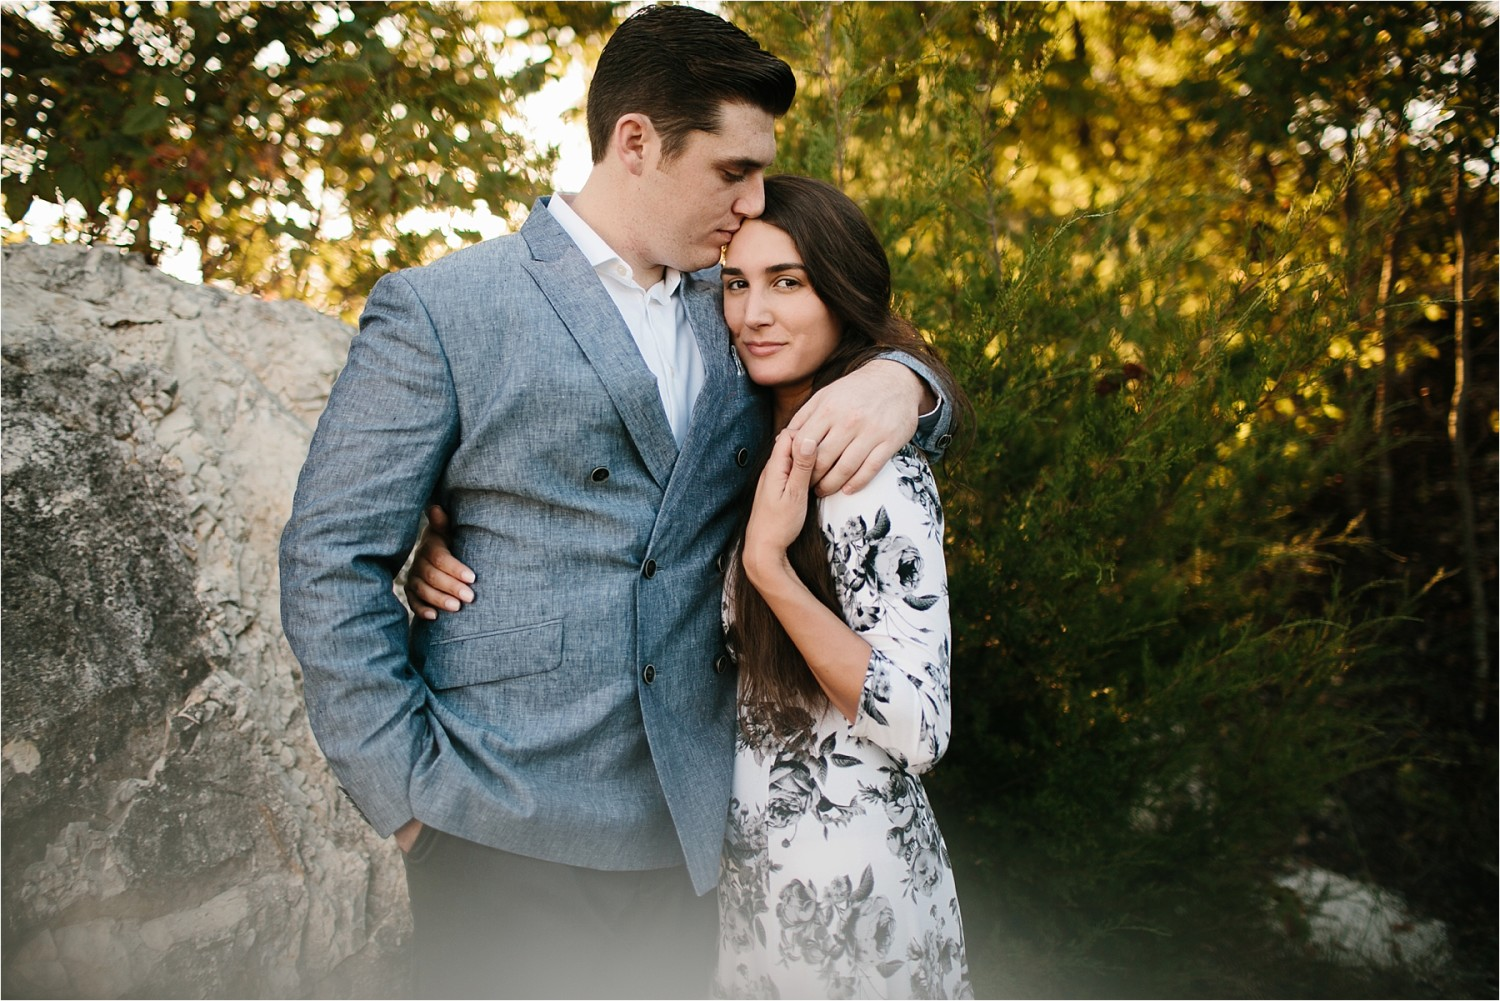 an-intimate-sunrise-session-by-north-texas-wedding-photographer-rachel-meagan-photography-_-33